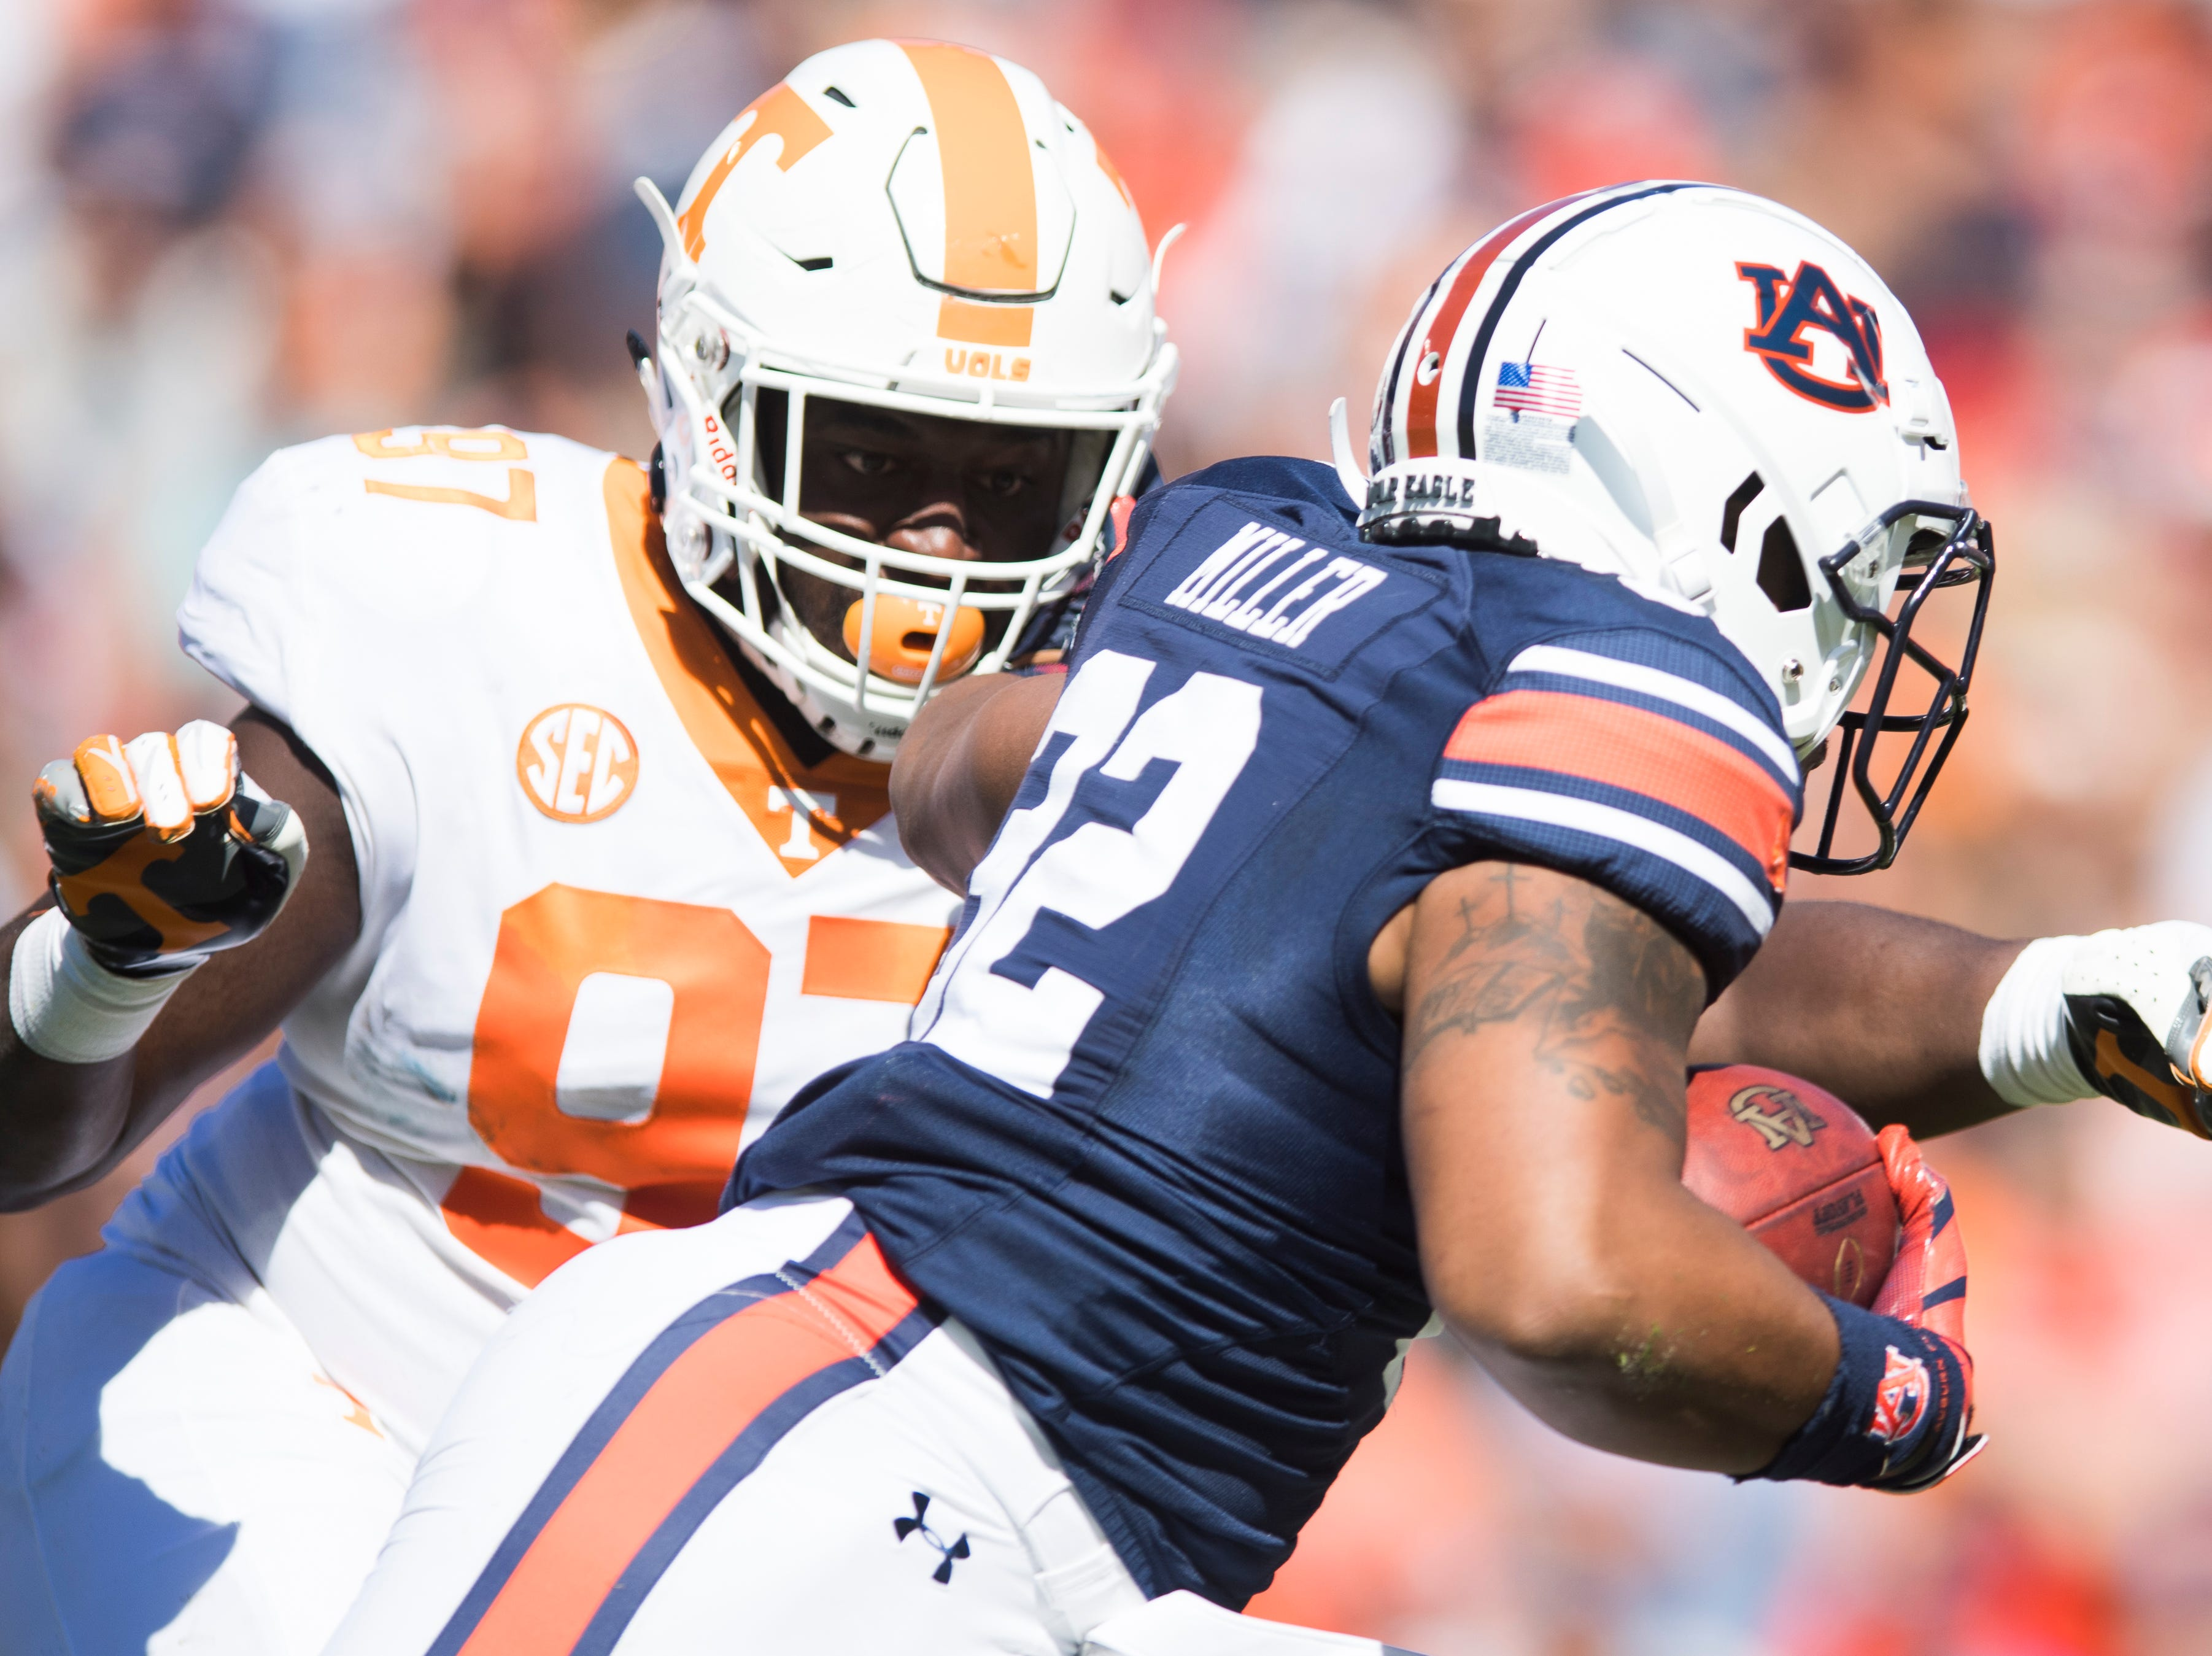 Tennessee defensive lineman Paul Bain (97) takes down Auburn defensive back John Broussard Jr. (22) during a game between Tennessee and Auburn at Jordan-Hare Stadium in Auburn, Alabama on Saturday, October 13, 2018.